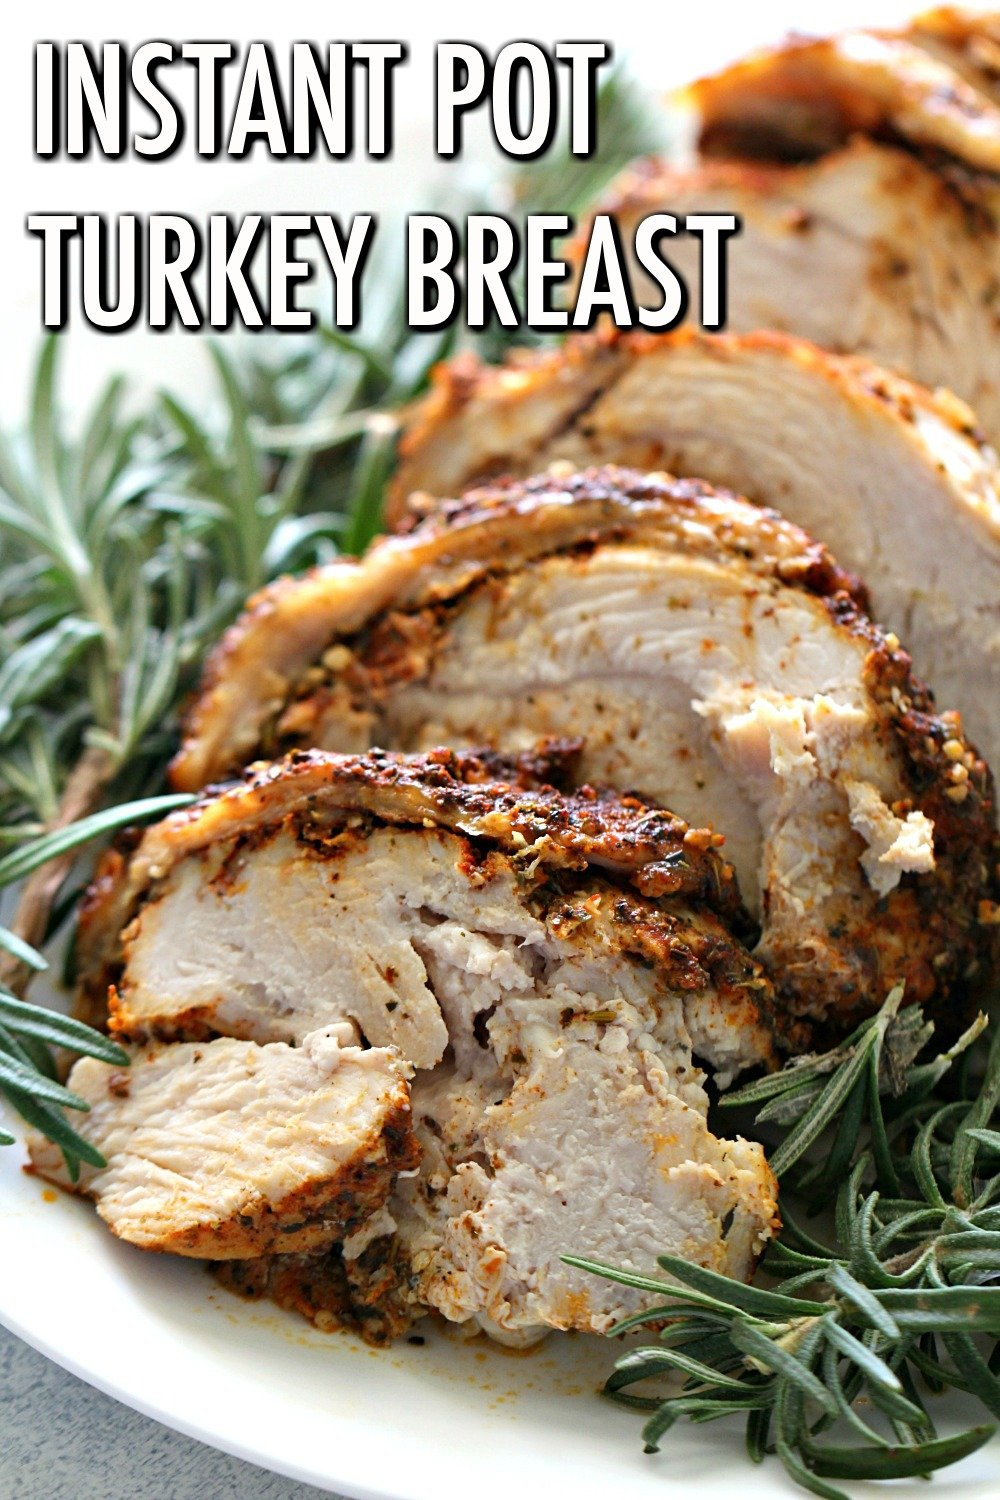 Instant Pot Turkey Breast cooked and ready to serve on a plate of rosemary.